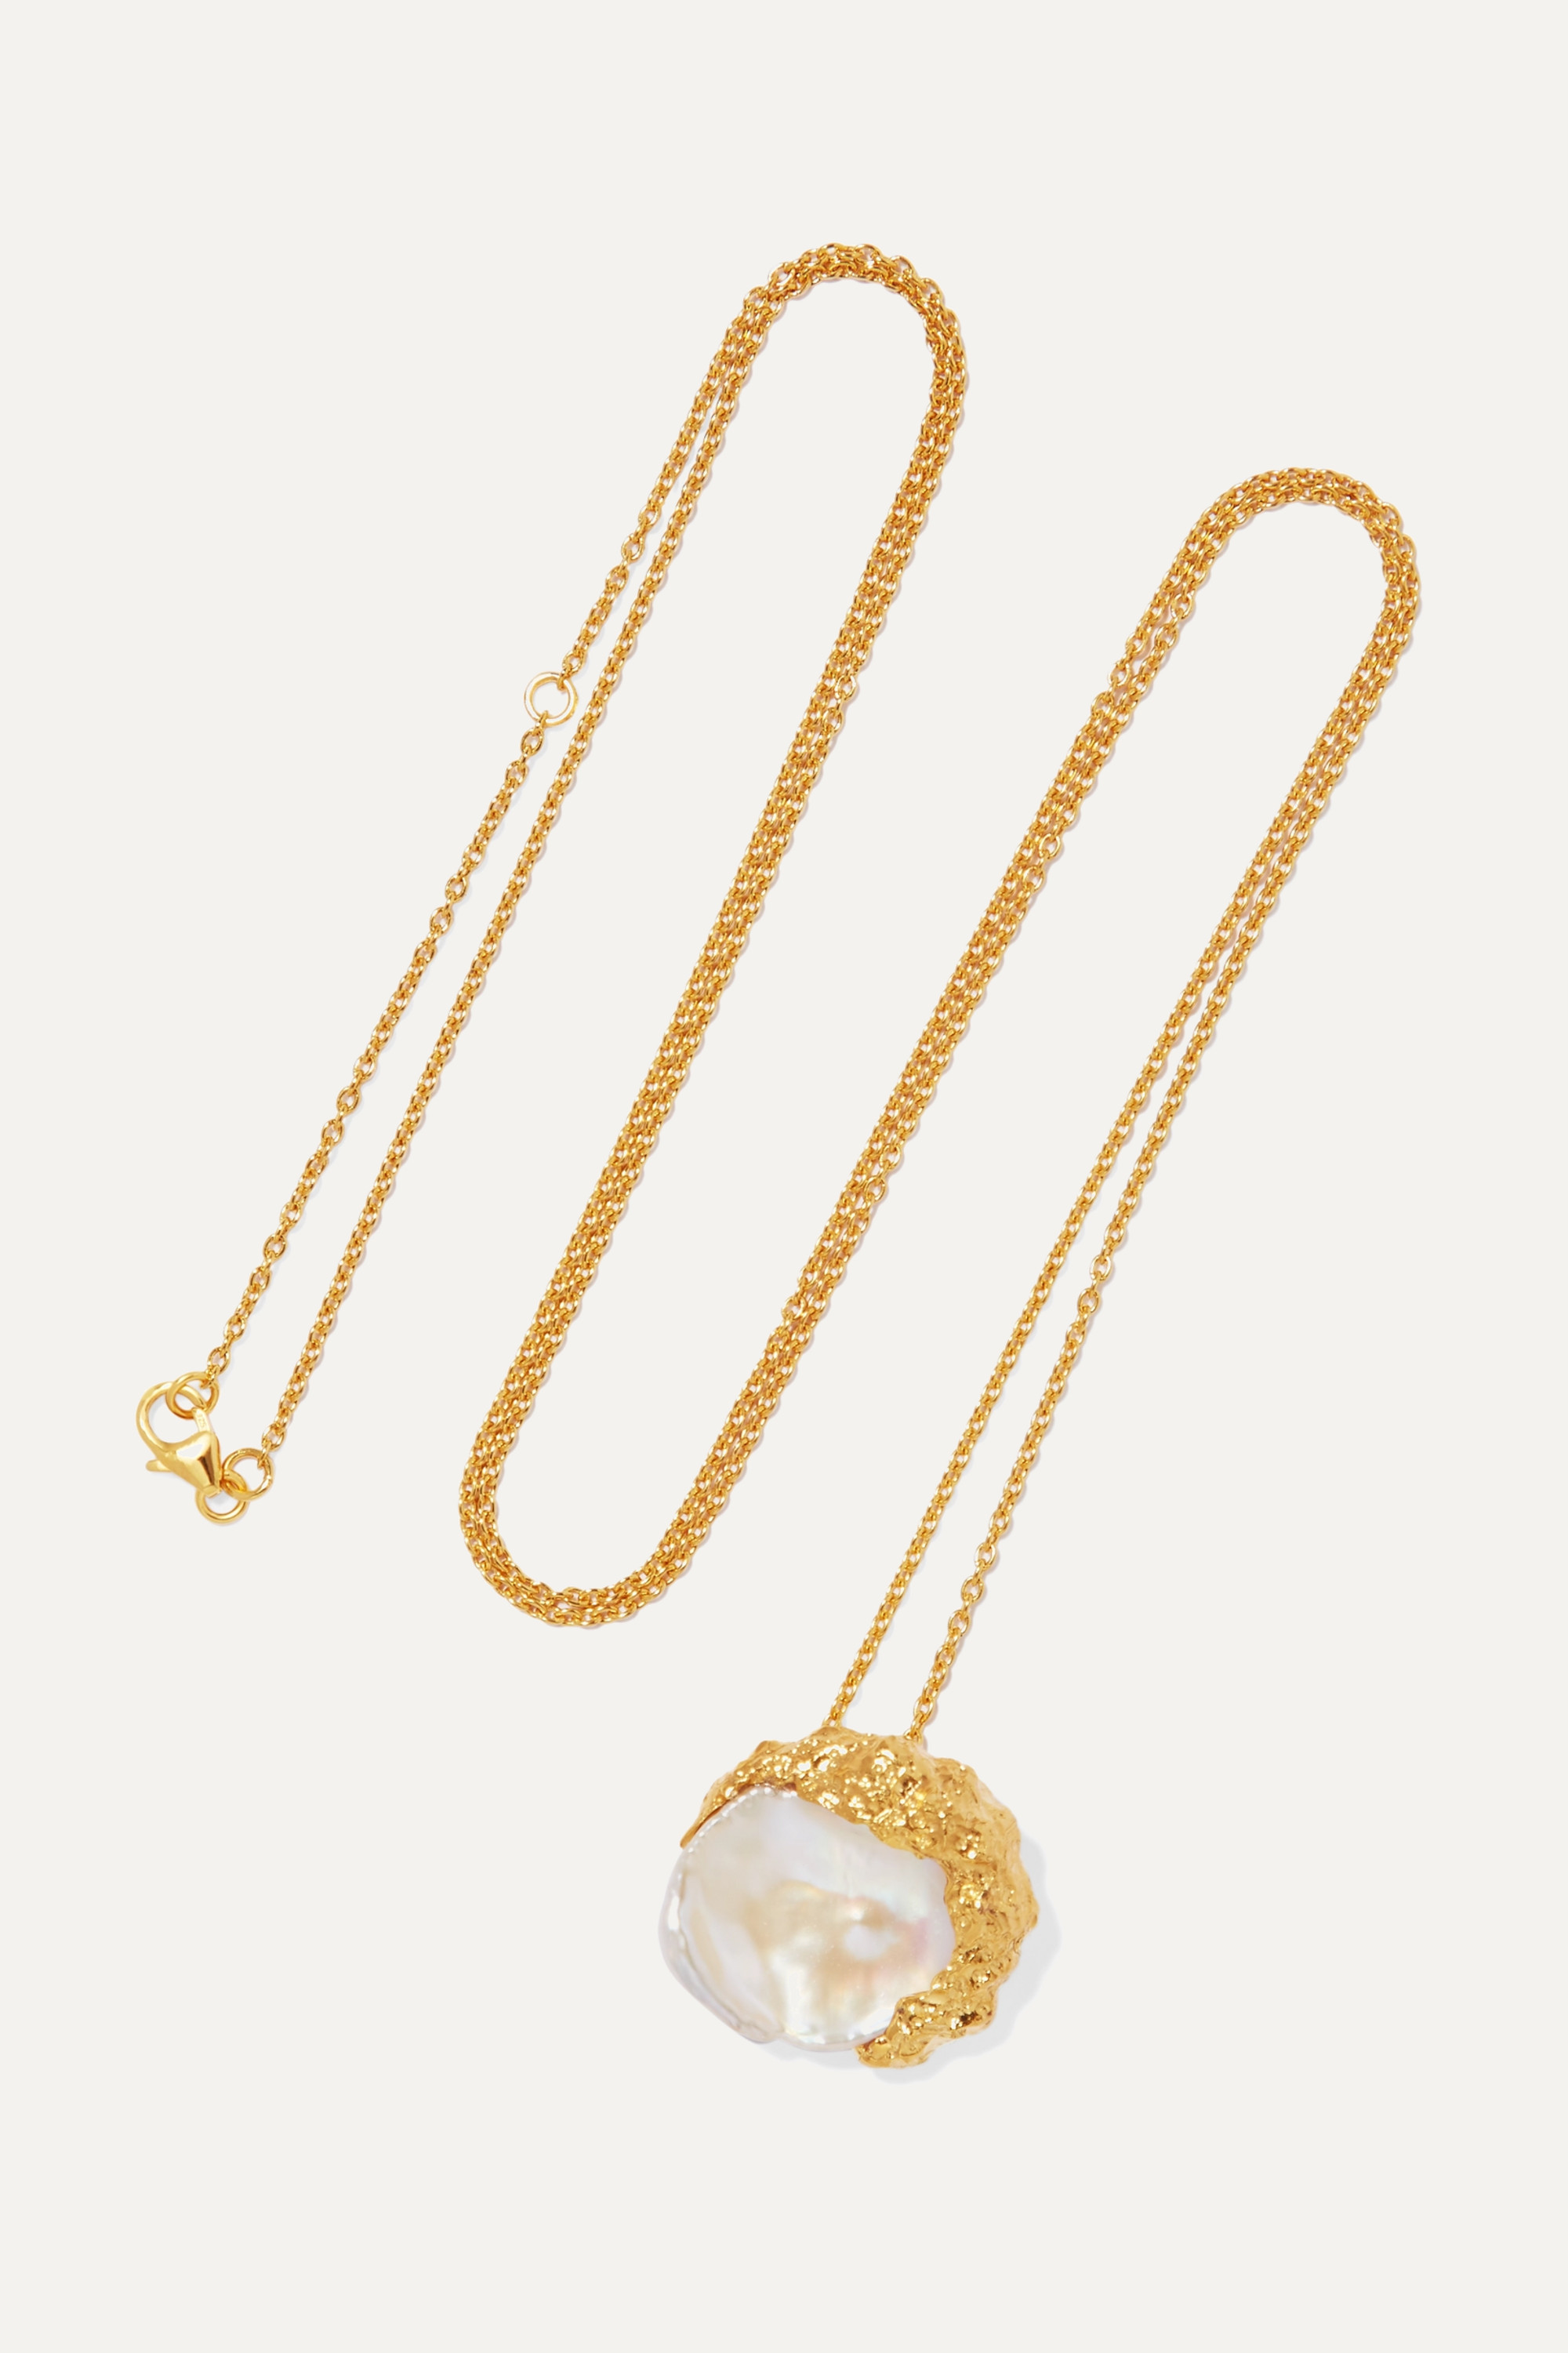 Pacharee Dhin gold-plated pearl necklace